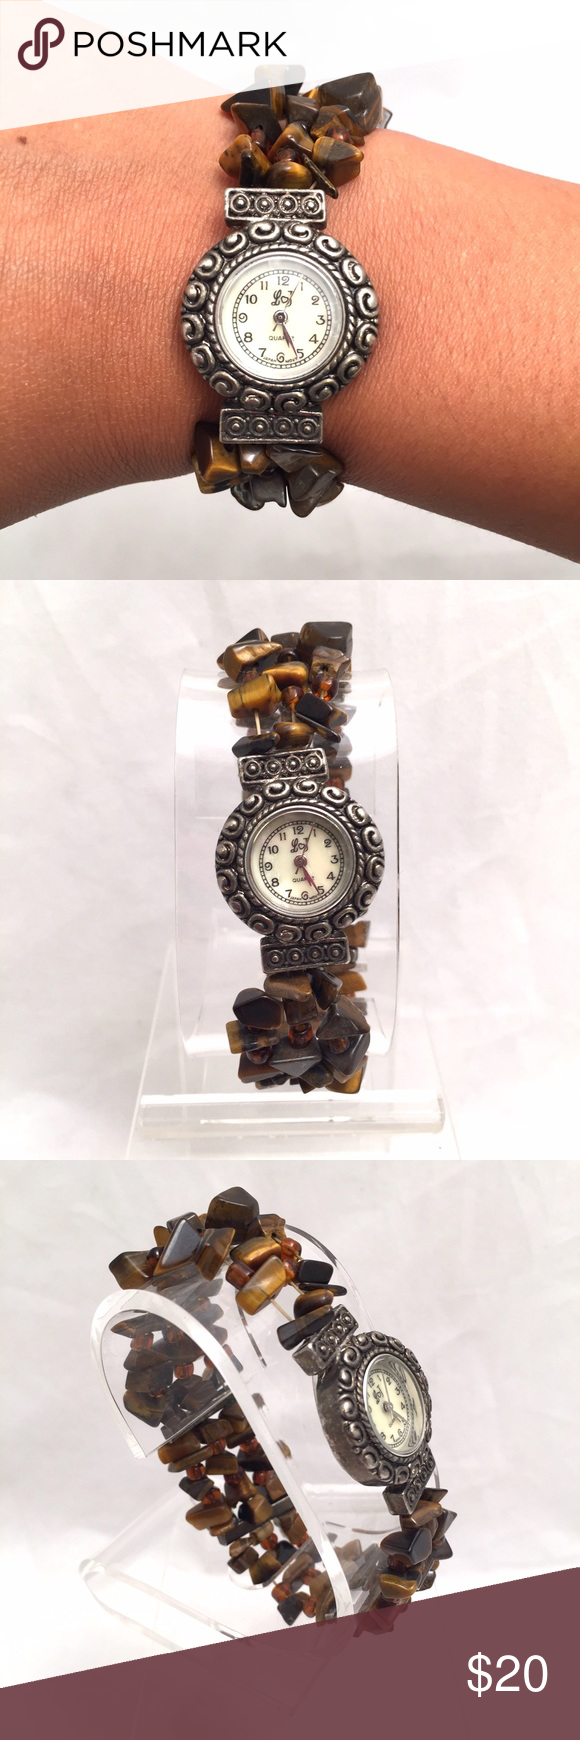 Brown Stone Bracelet Watch Unbranded beauty! Stretchy bracelet features watch adorned with brown tone stones throughout. Unique! Unbranded Accessories Watches